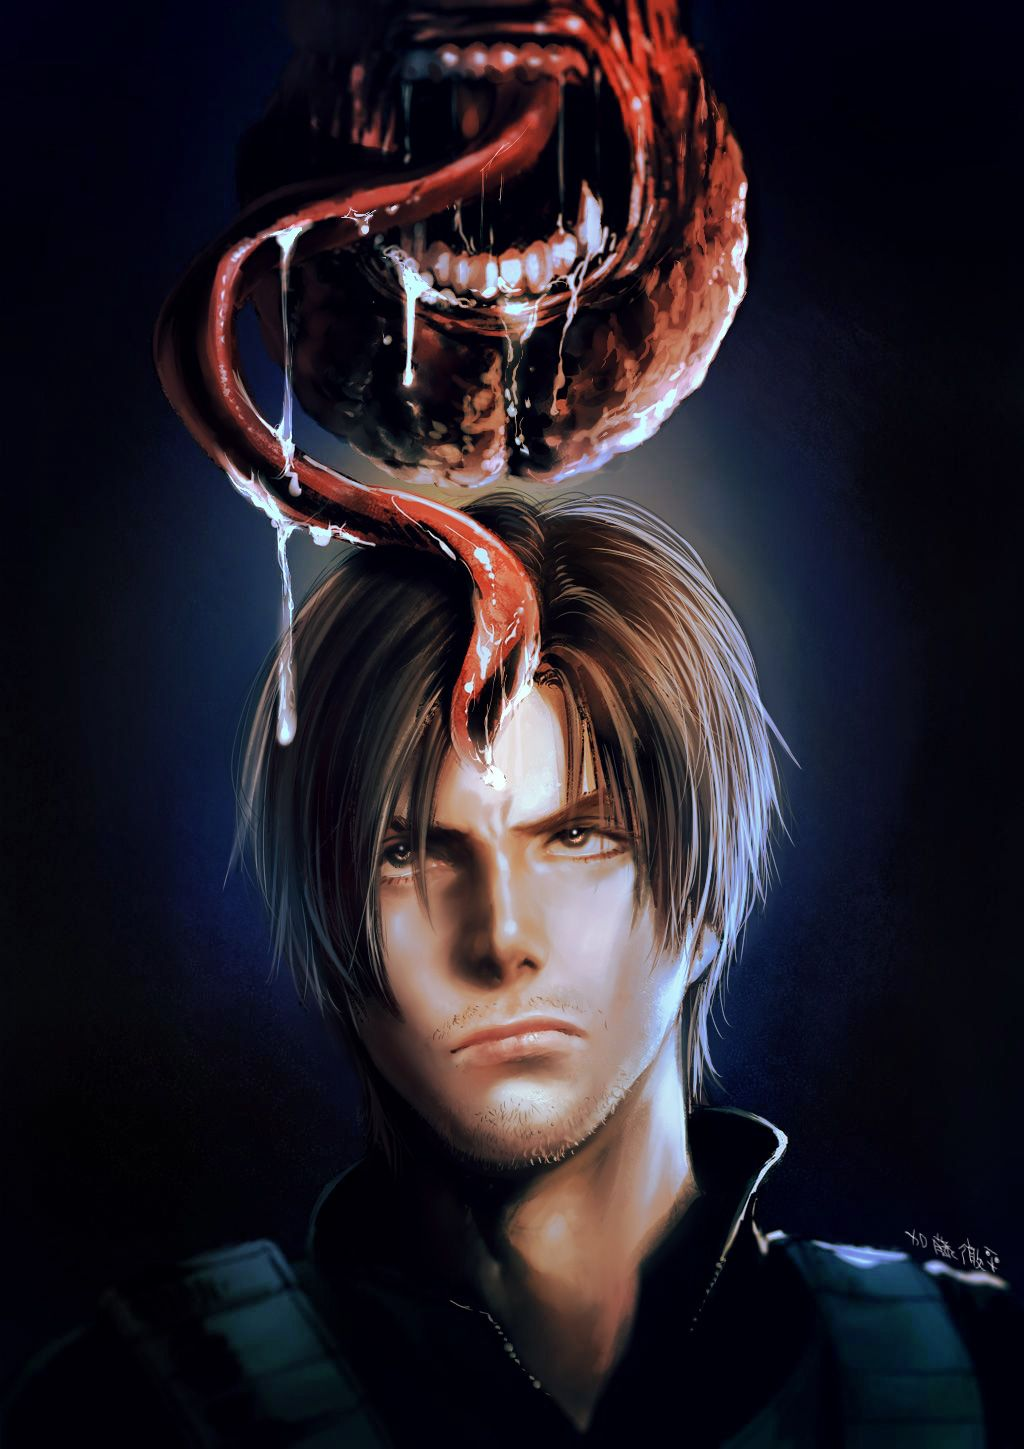 Leon Kennedy And Licker Resident Evil 6 Artwork By Katou Teppei